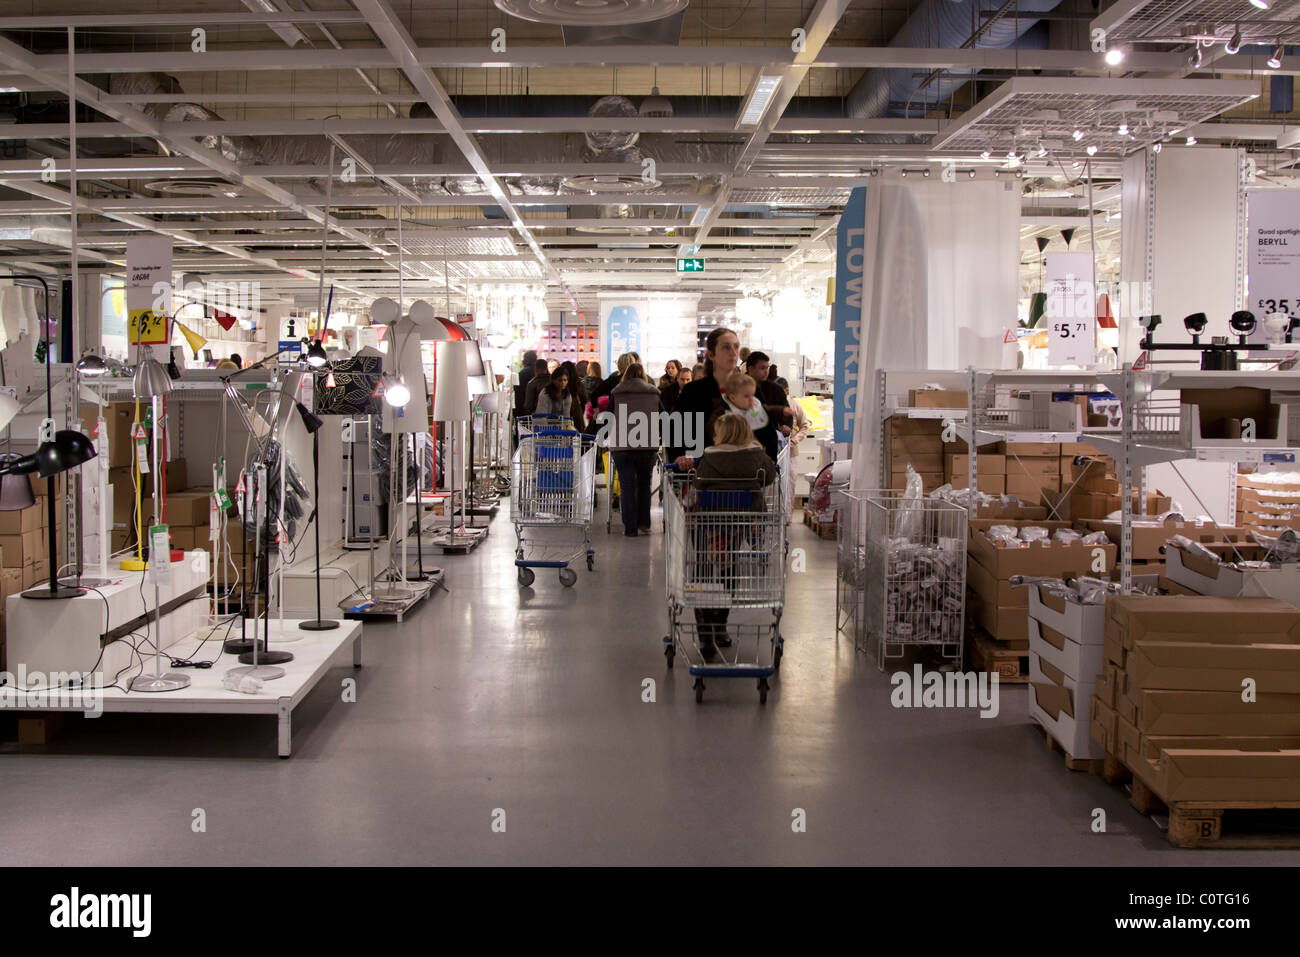 Ikea In Mass Ikea Store Wembley London Stock Photo Royalty Free Image